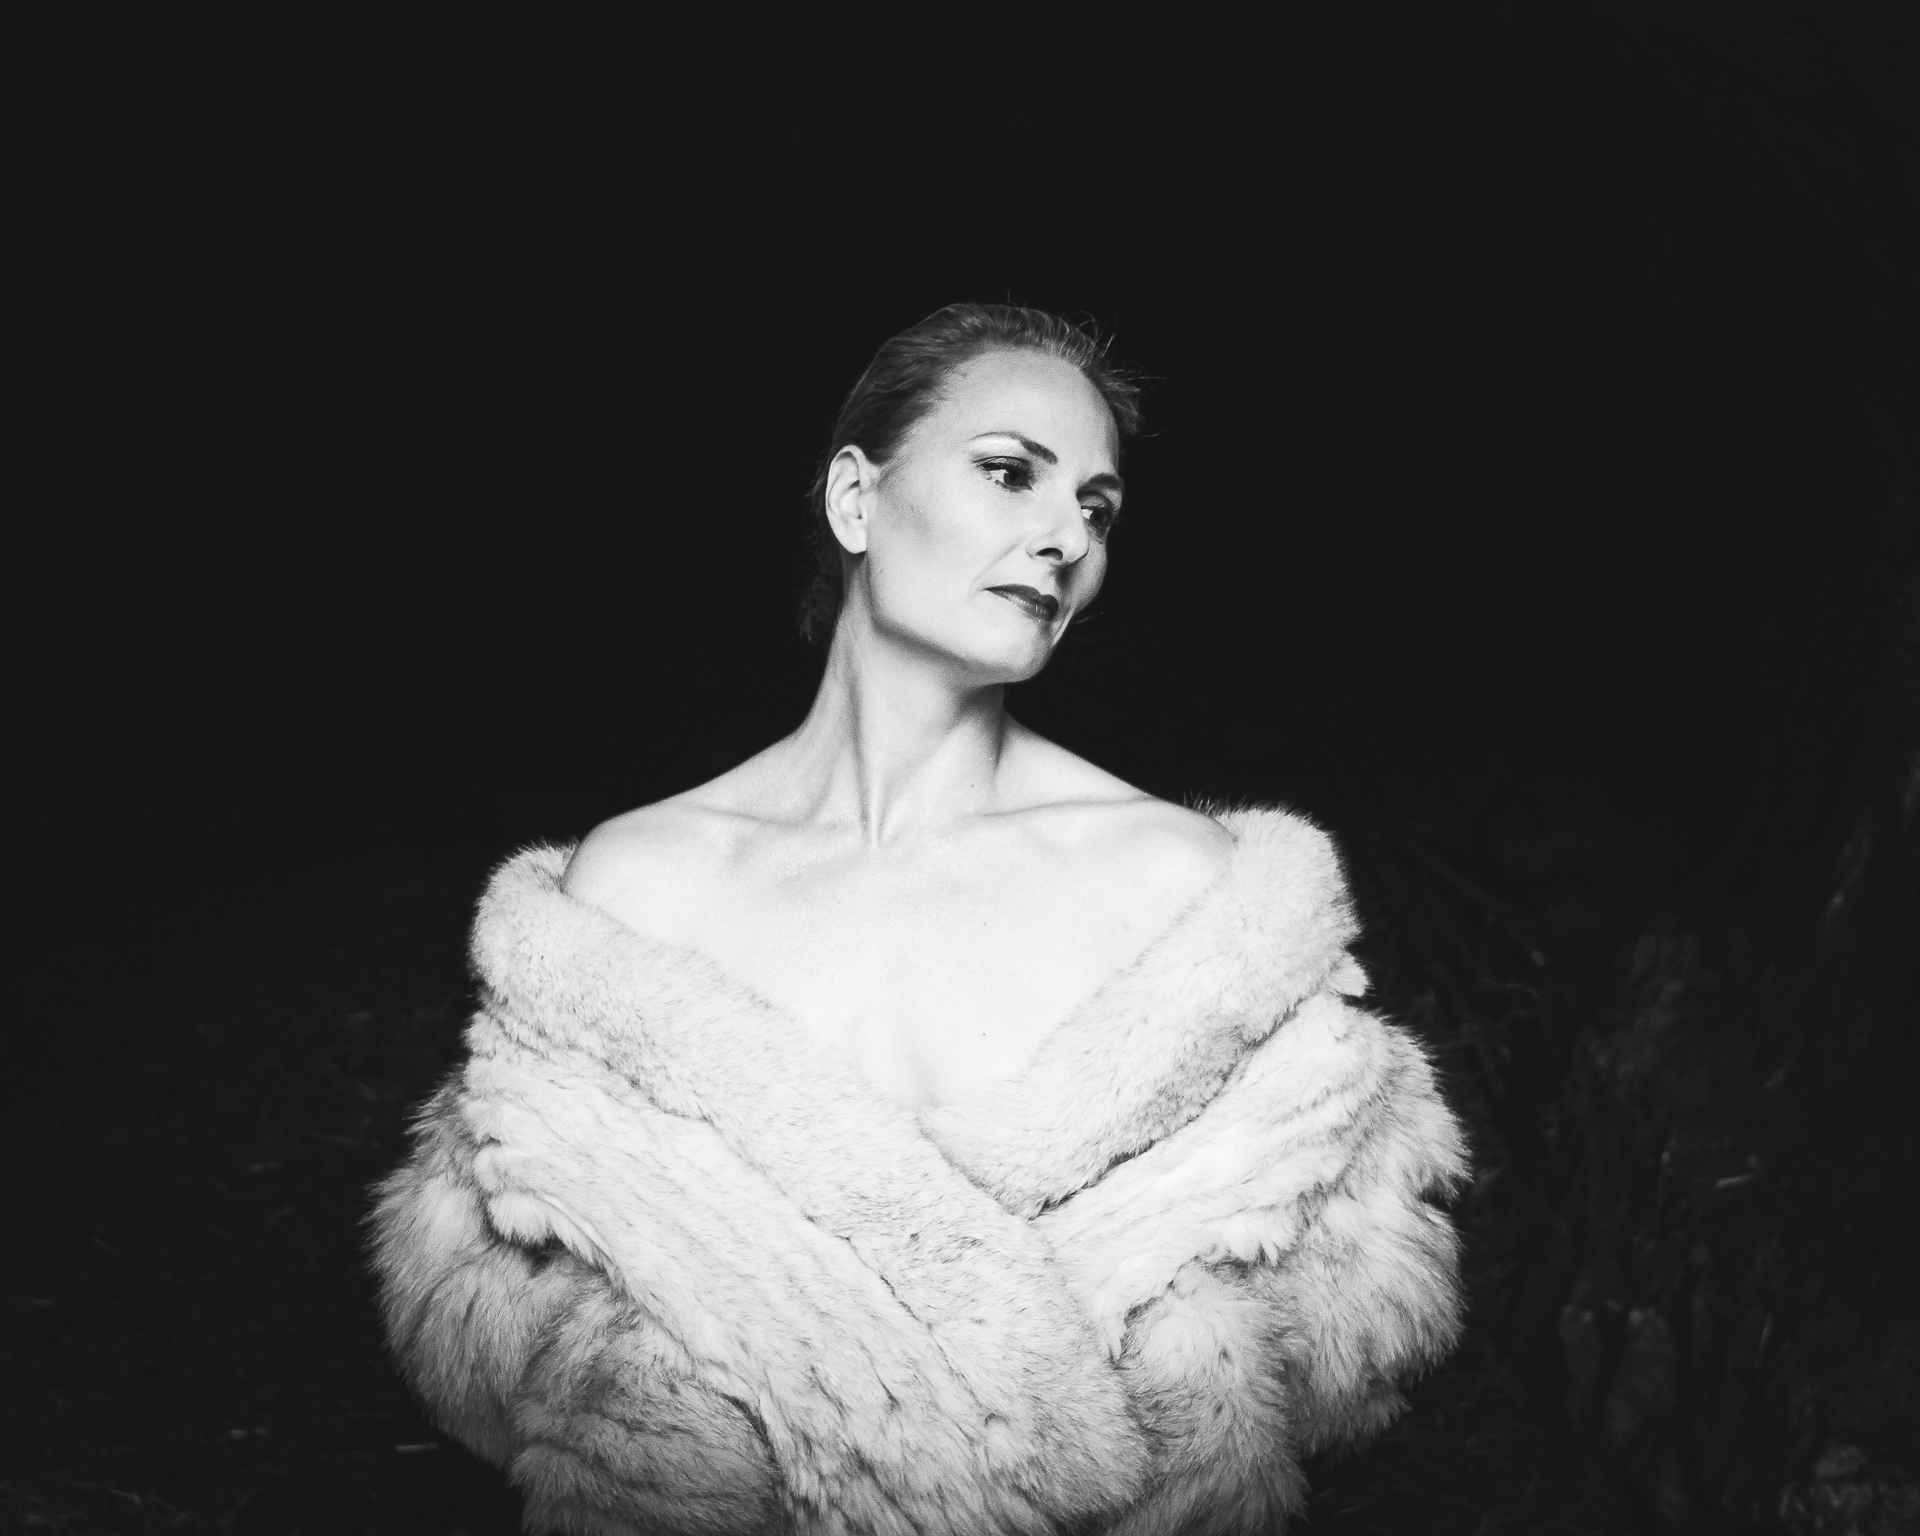 A black & white image of Liz from the waist upwards, against a black background. Liz is naked, save a fake fur coat that is worn off her shoulders, she holds it together at her waist allowing just a hint of 'tease'. Liz wears her hair pulled hard back, this is complimented by very effective harsh make-up, giving an old fashioned classic appearance.